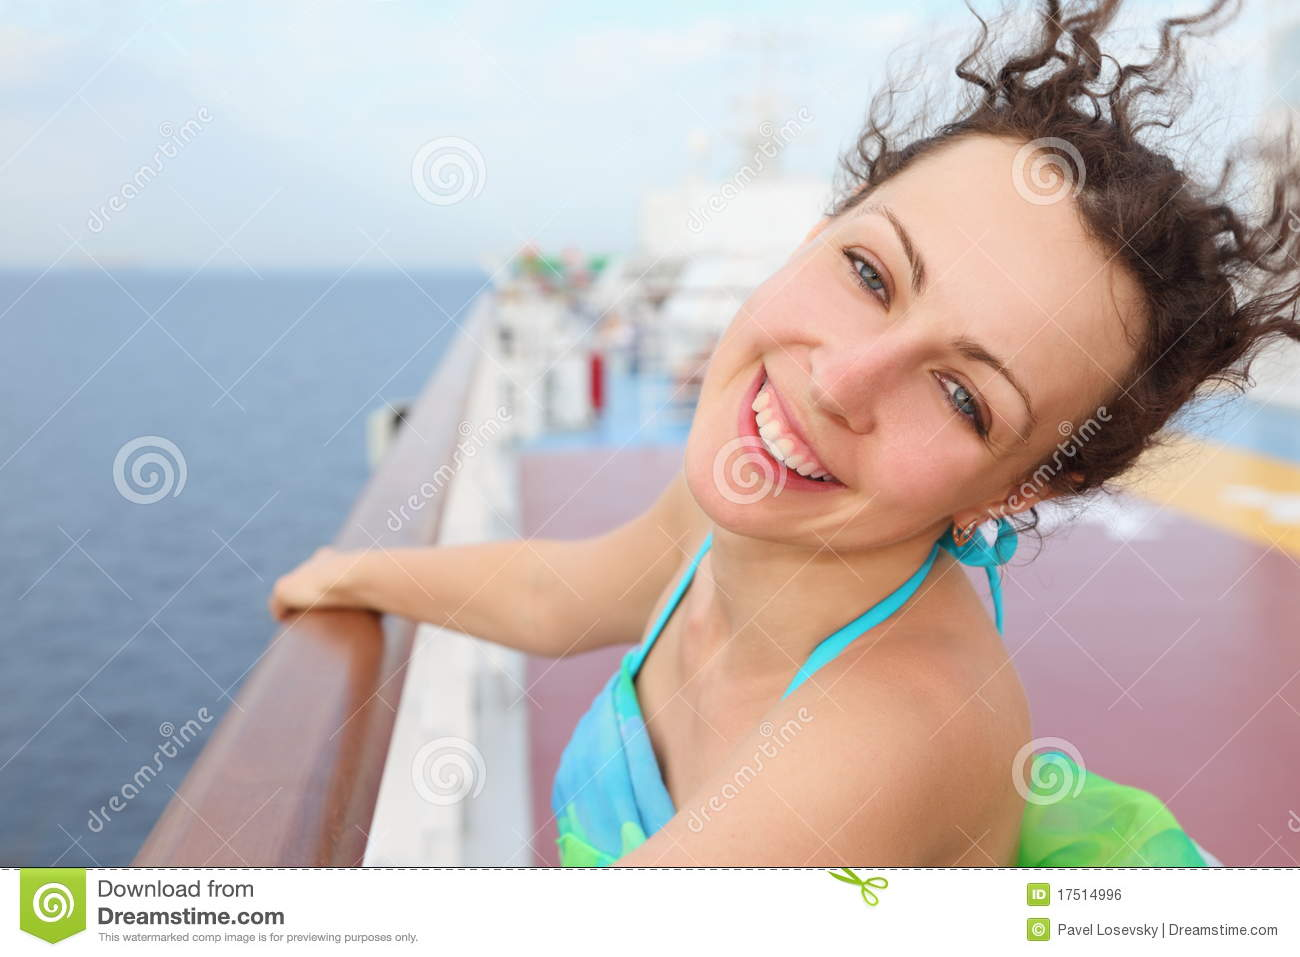 photos images beautiful girl cruise ship